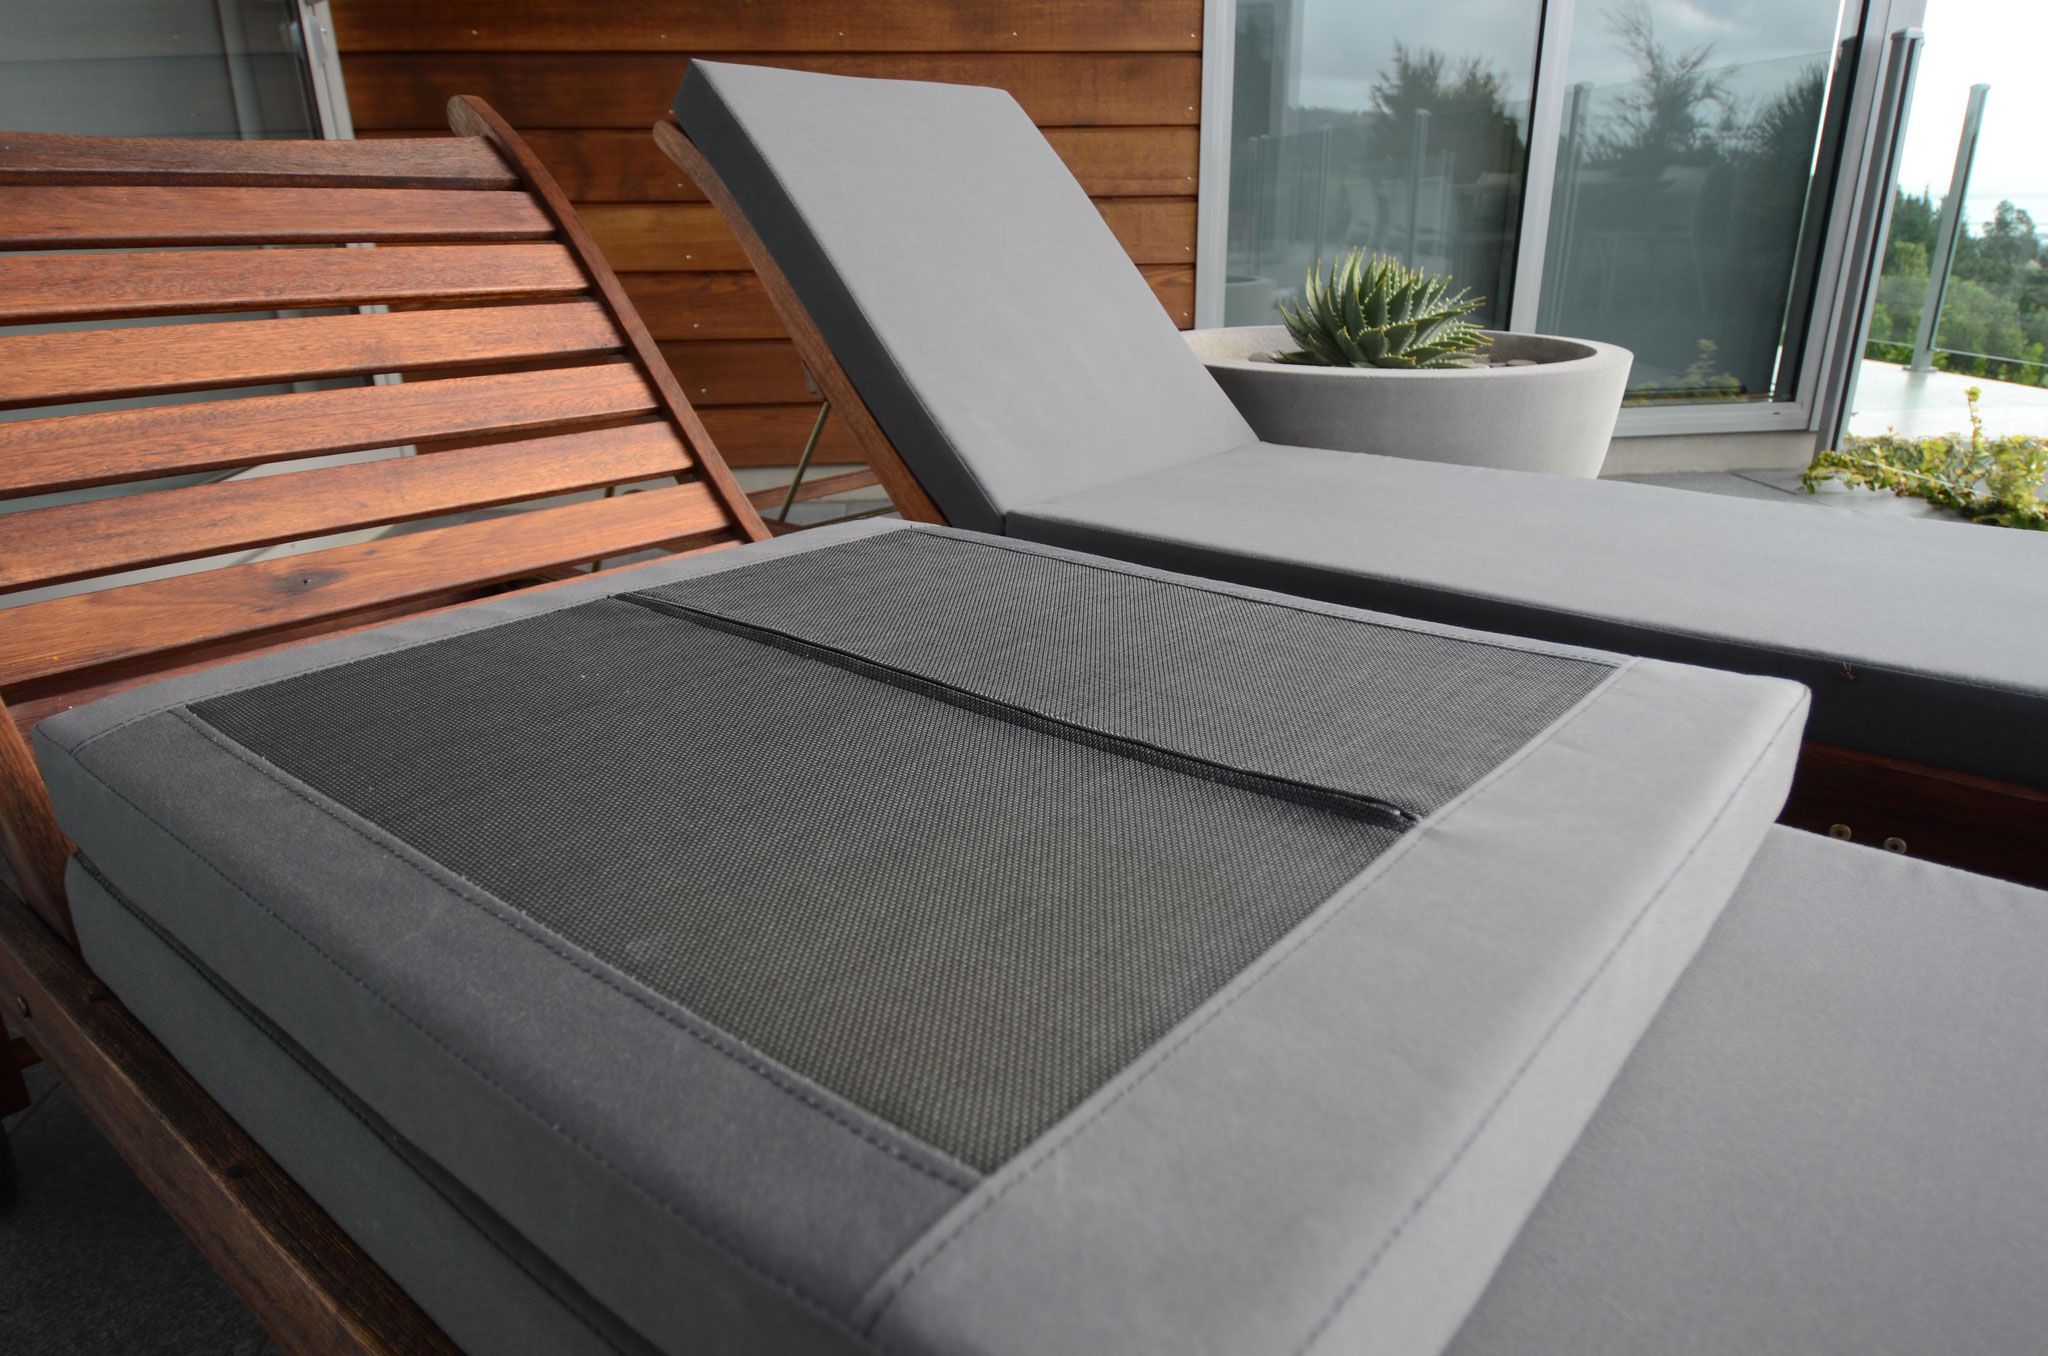 Outdoor Lounger Squabs with draining mesh bottoms